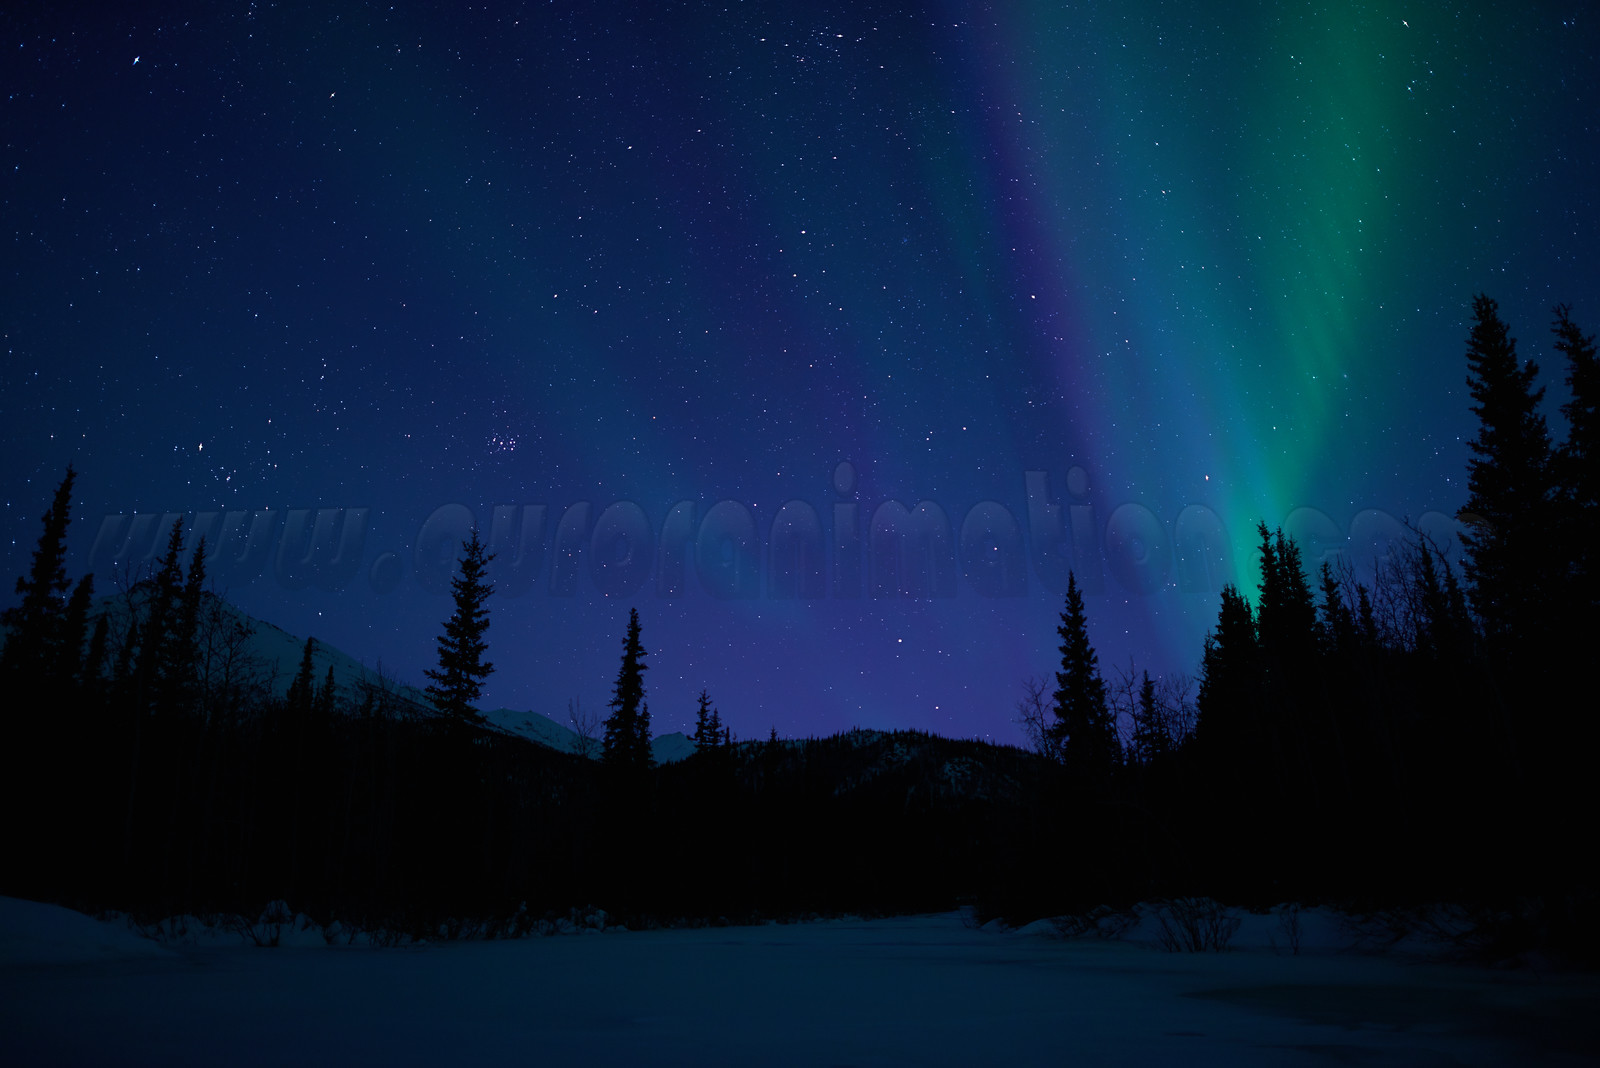 Northern Lights in Wiseman on March 22